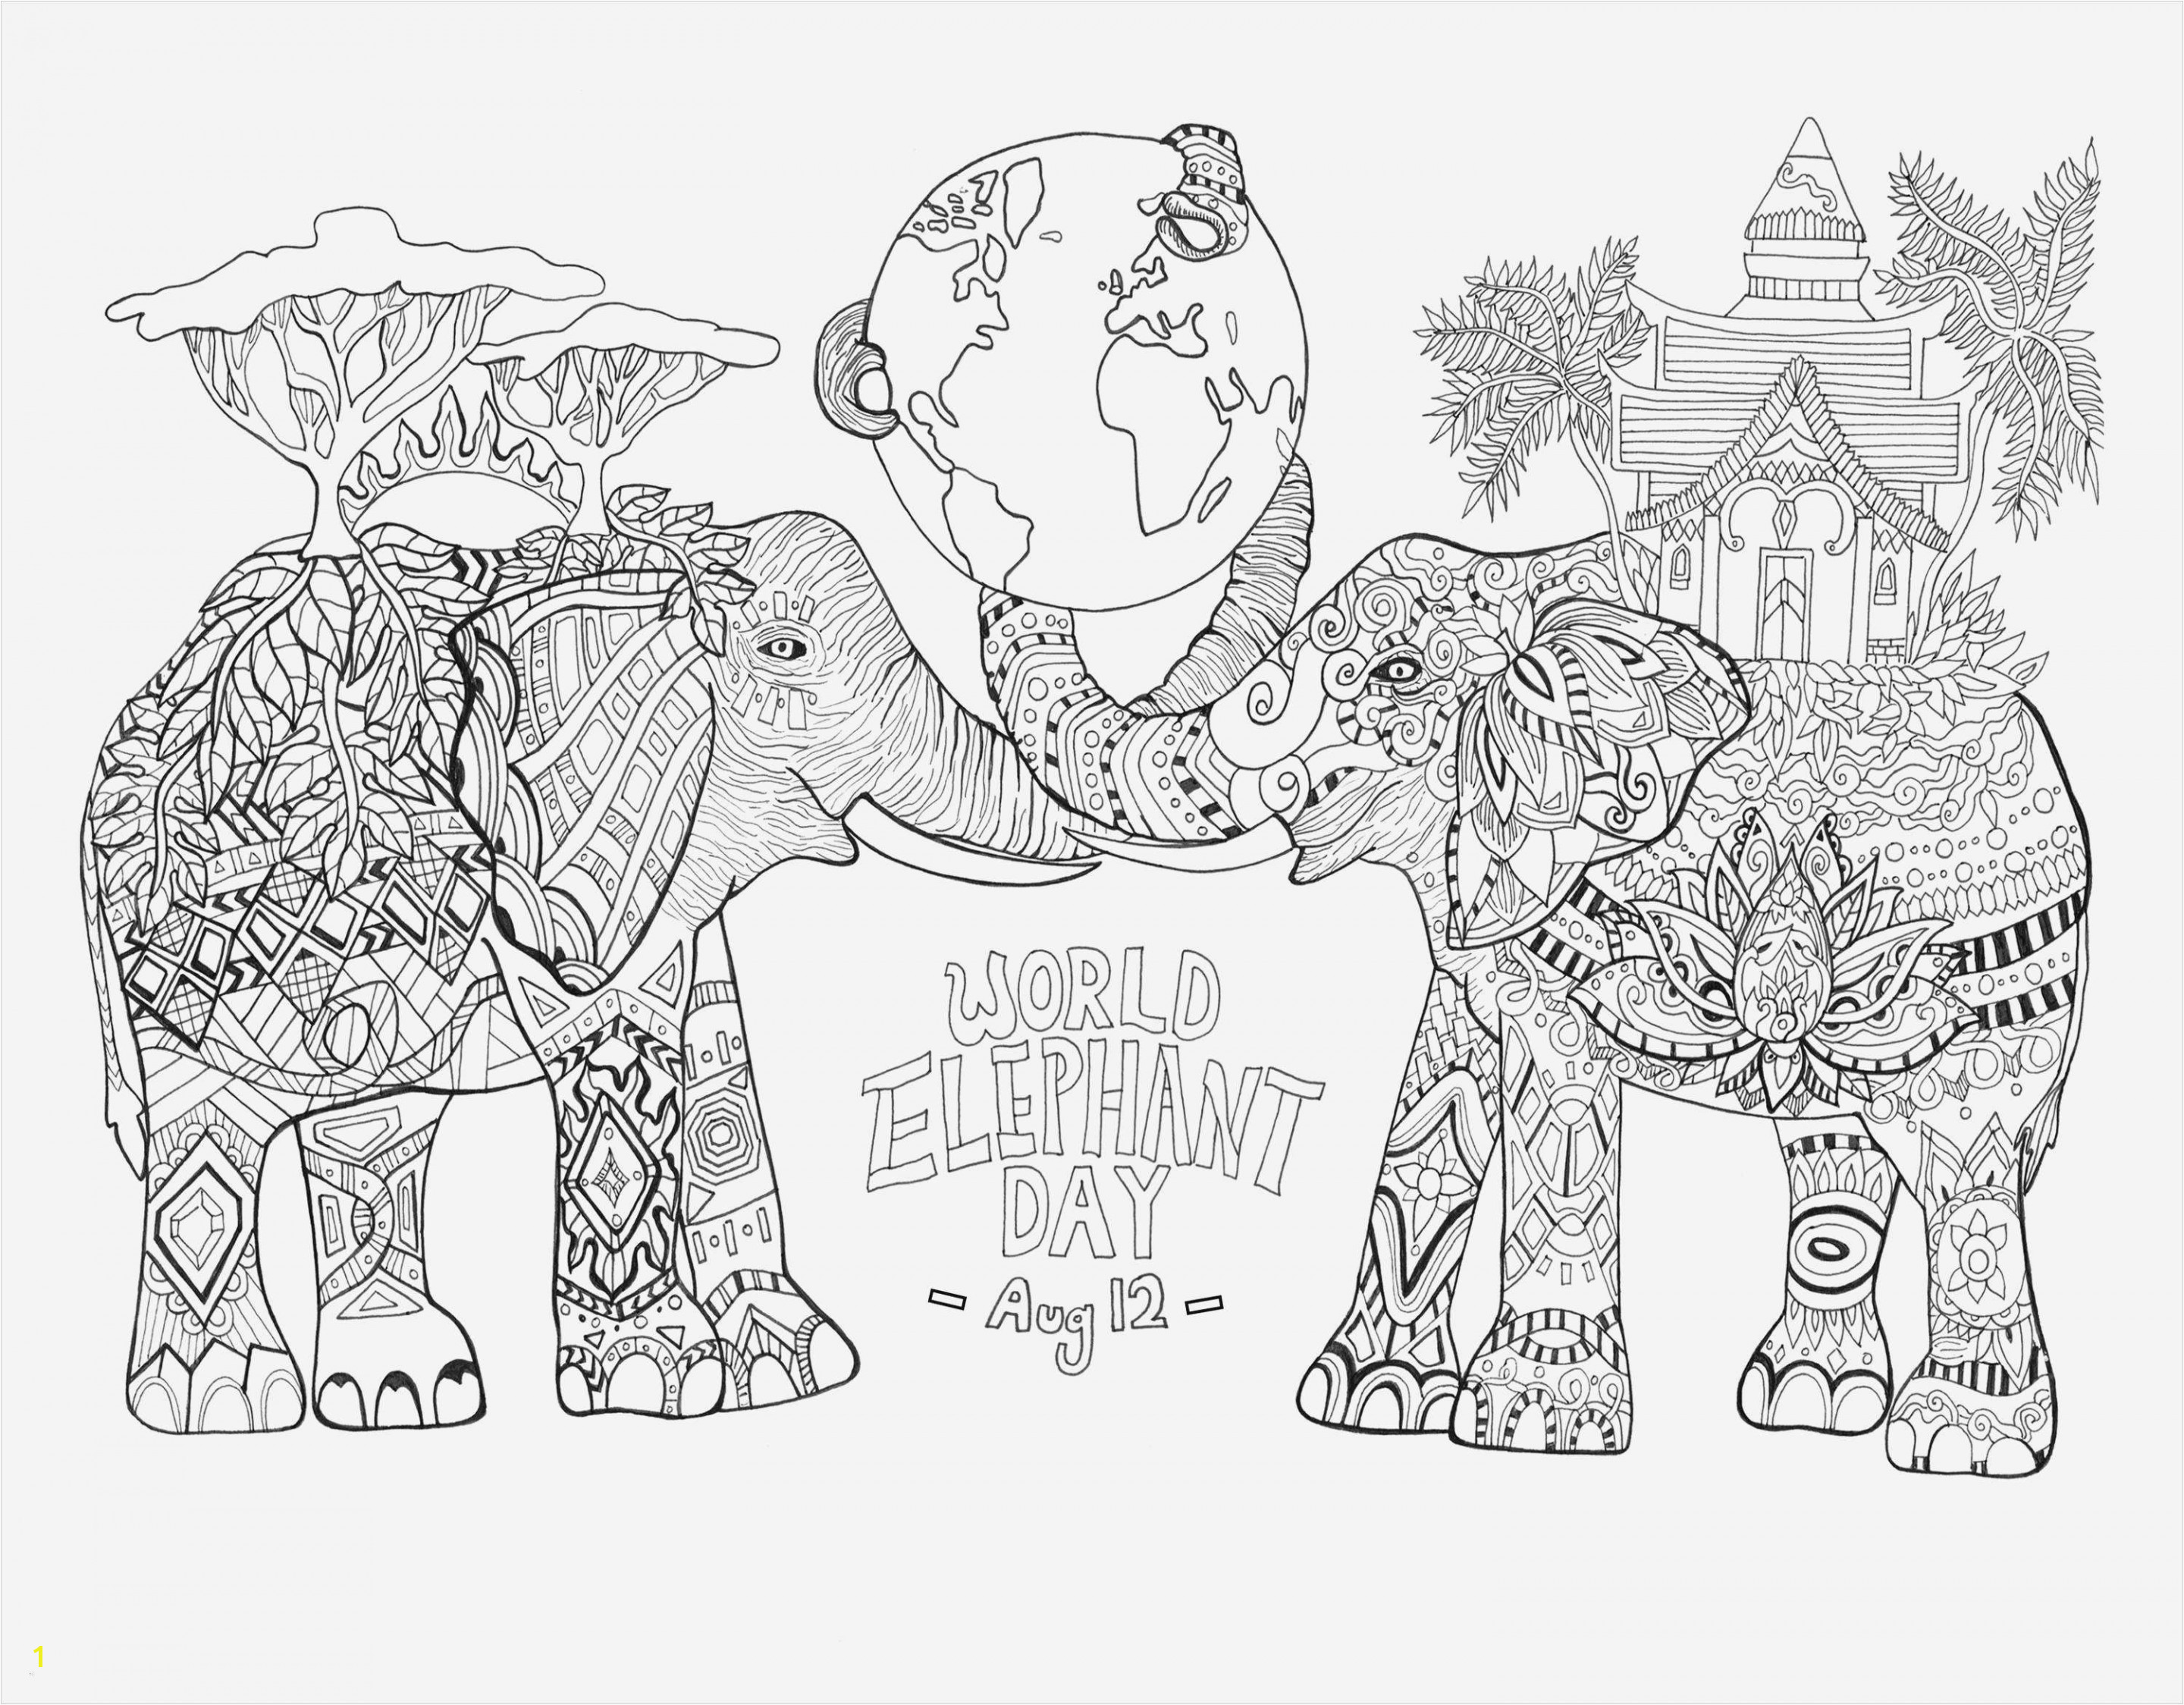 Free Coloring Pages Horses Coloring Page Horse Fresh Elephant Coloring Pages Nice Best Od Dog